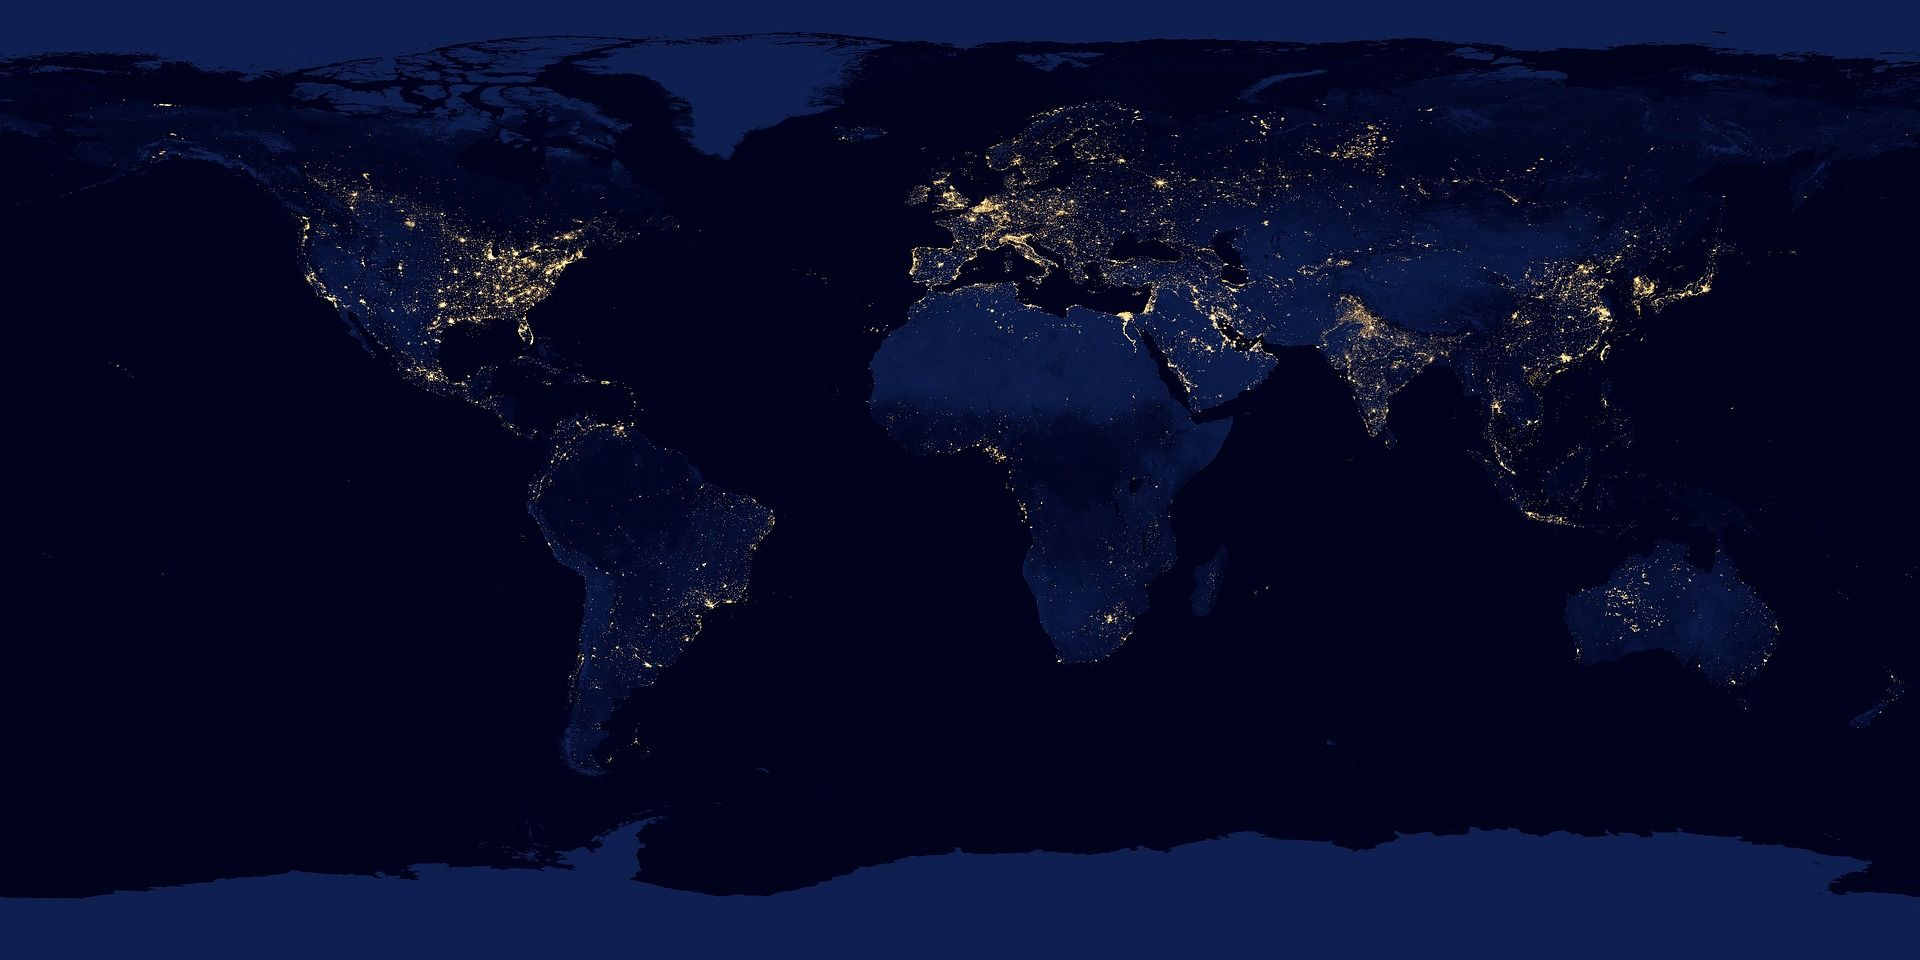 Free Image On Pixabay Nasa Earth Map Night Sky Earth At Night Earth City Earth From Space